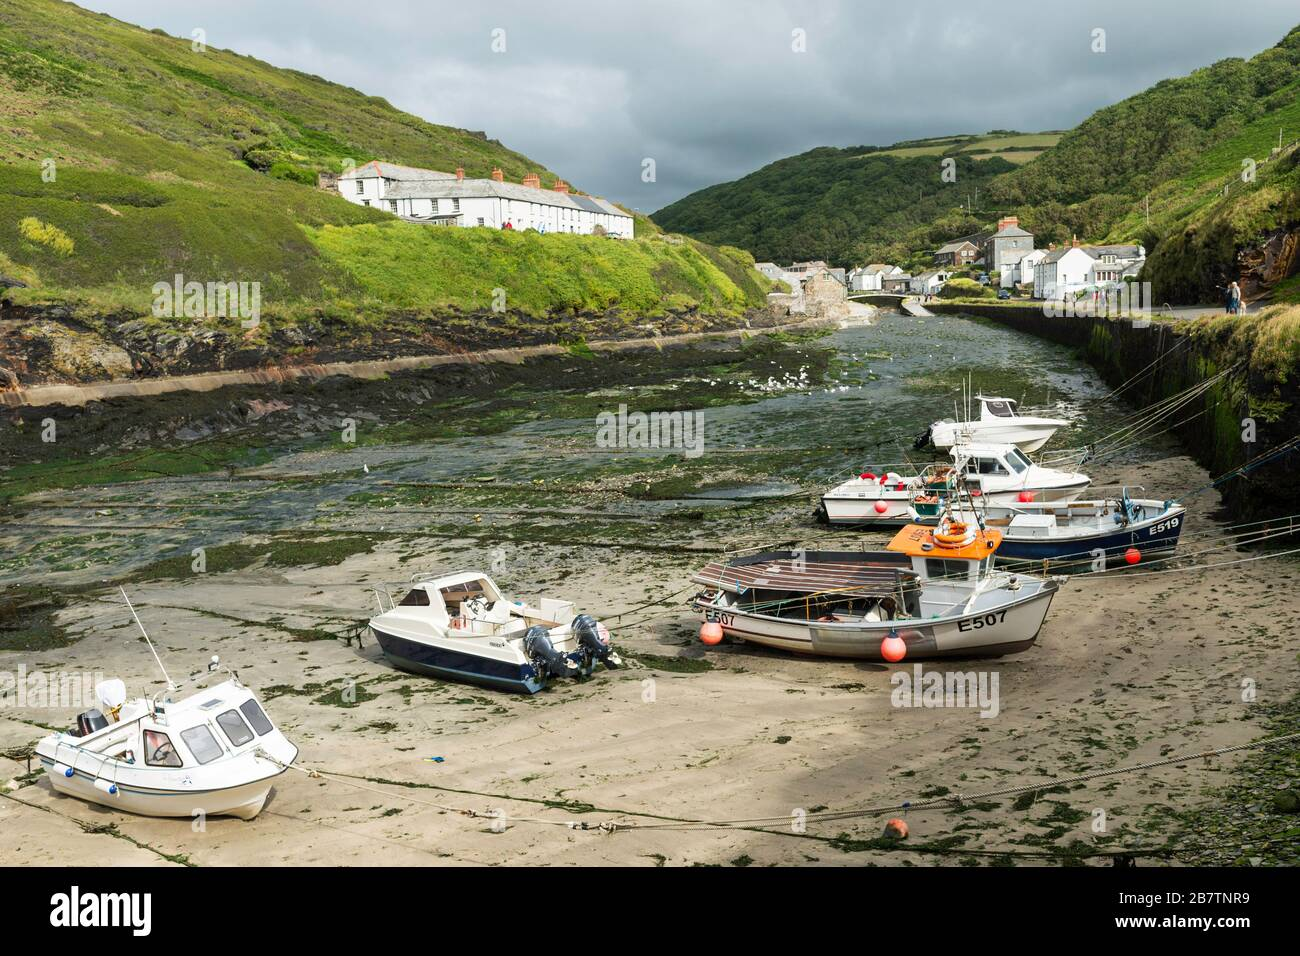 A natural inlet forms the harbour for the fishing port of Boscastle in Cornwall, England, UK. Stock Photo